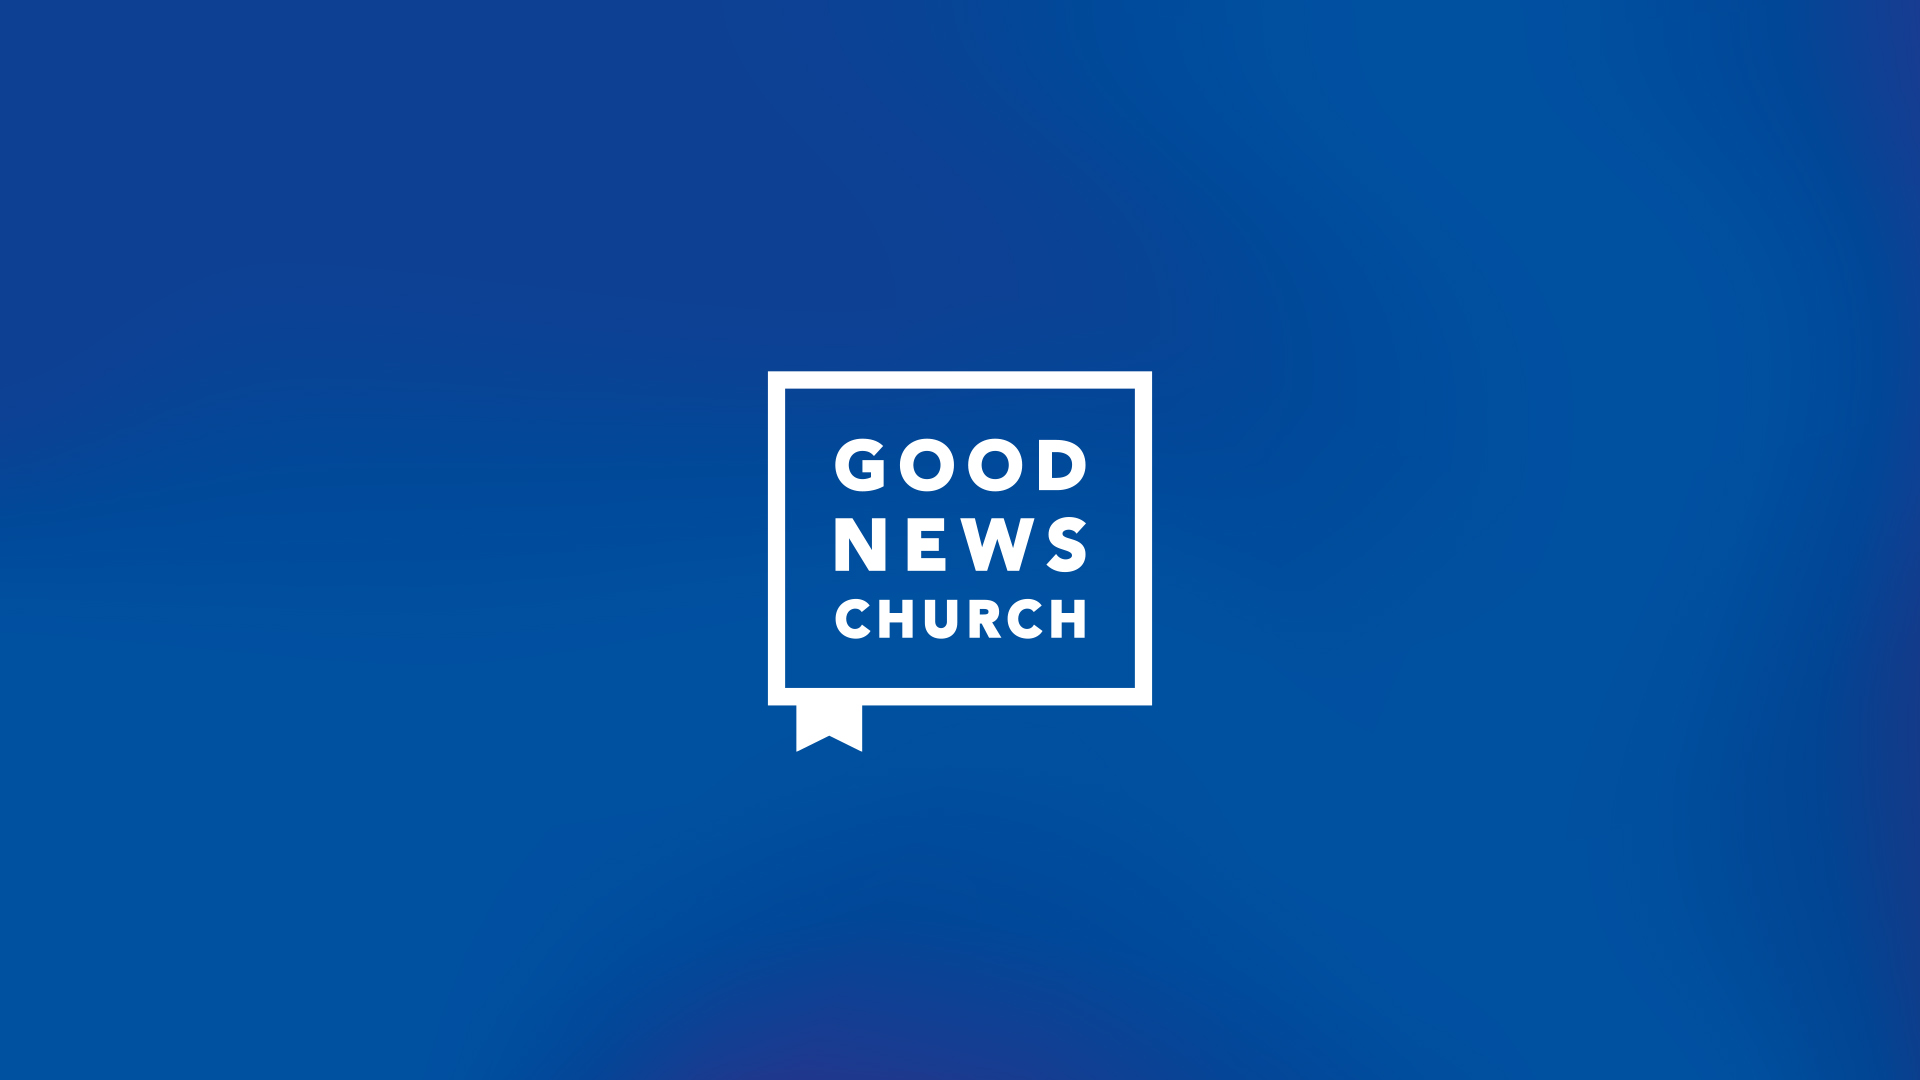 07-Lobo-Creative-Good-News-Church-branding-logo-design-in-Bournemouth.jpg